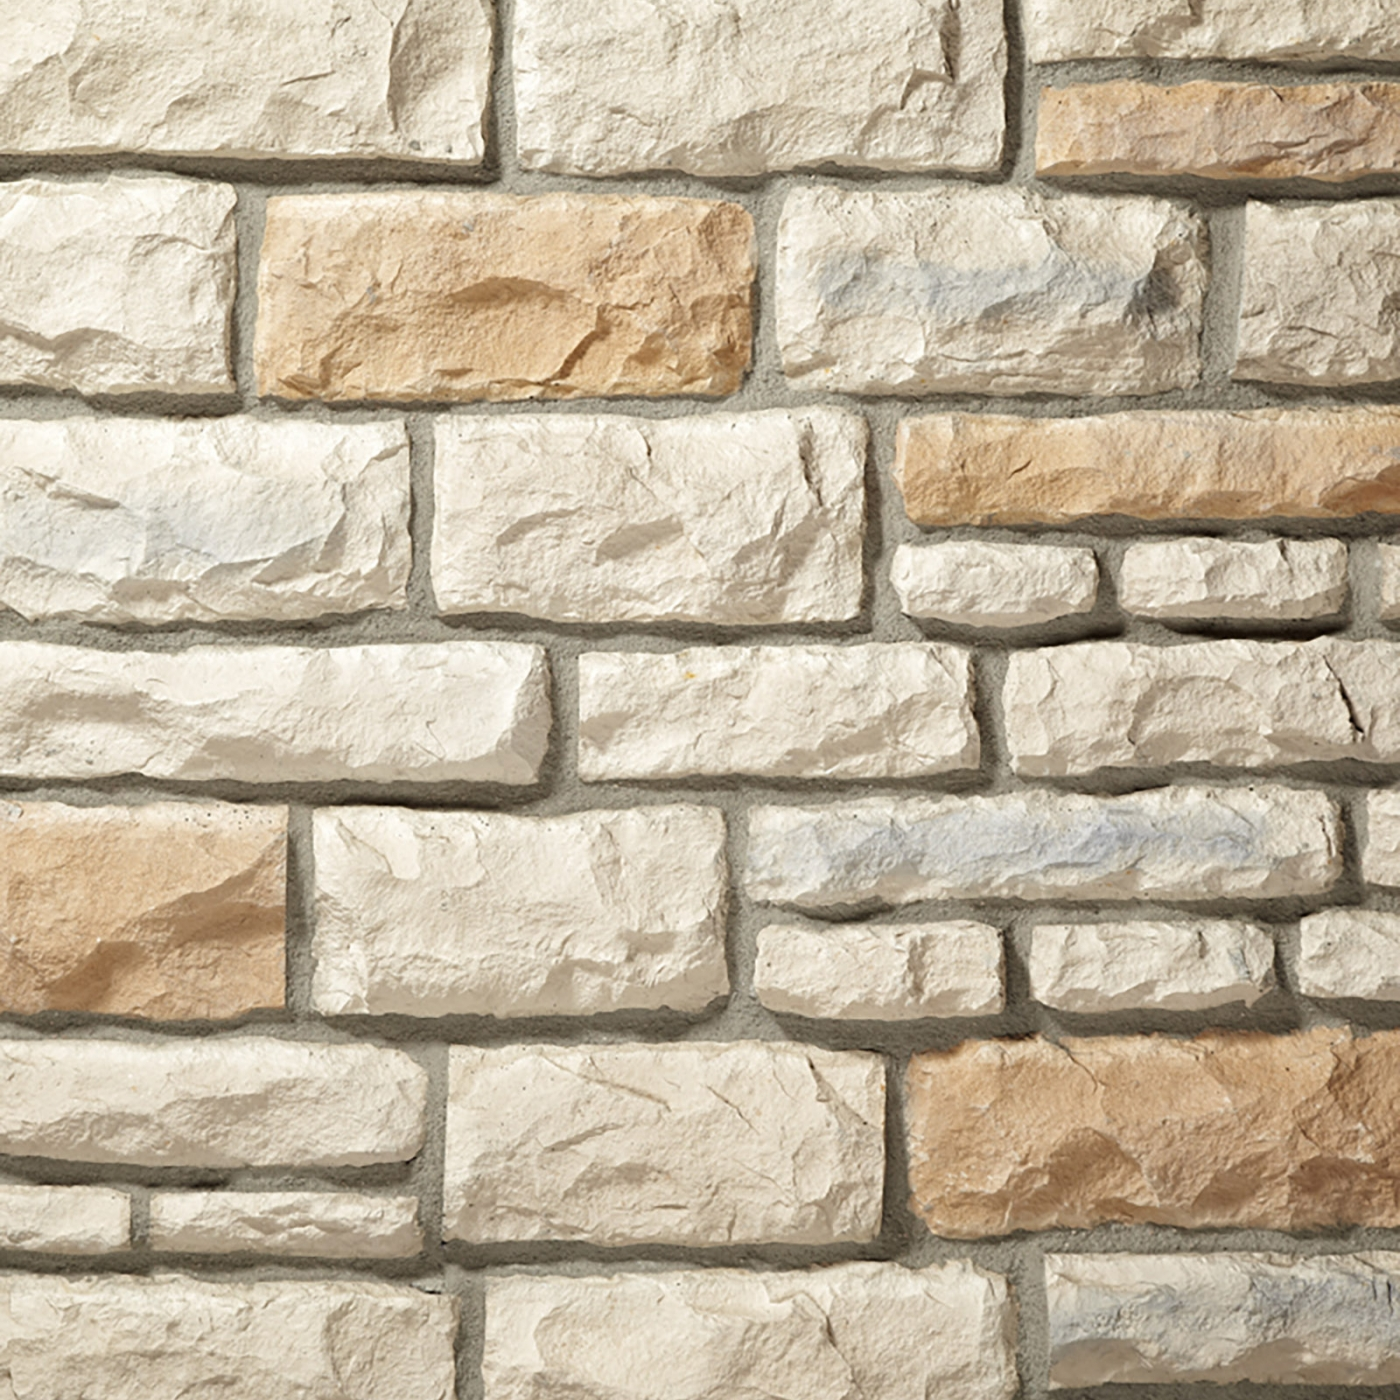 California Gold Cut Stone Stone Veneer from Environmental StoneWorks